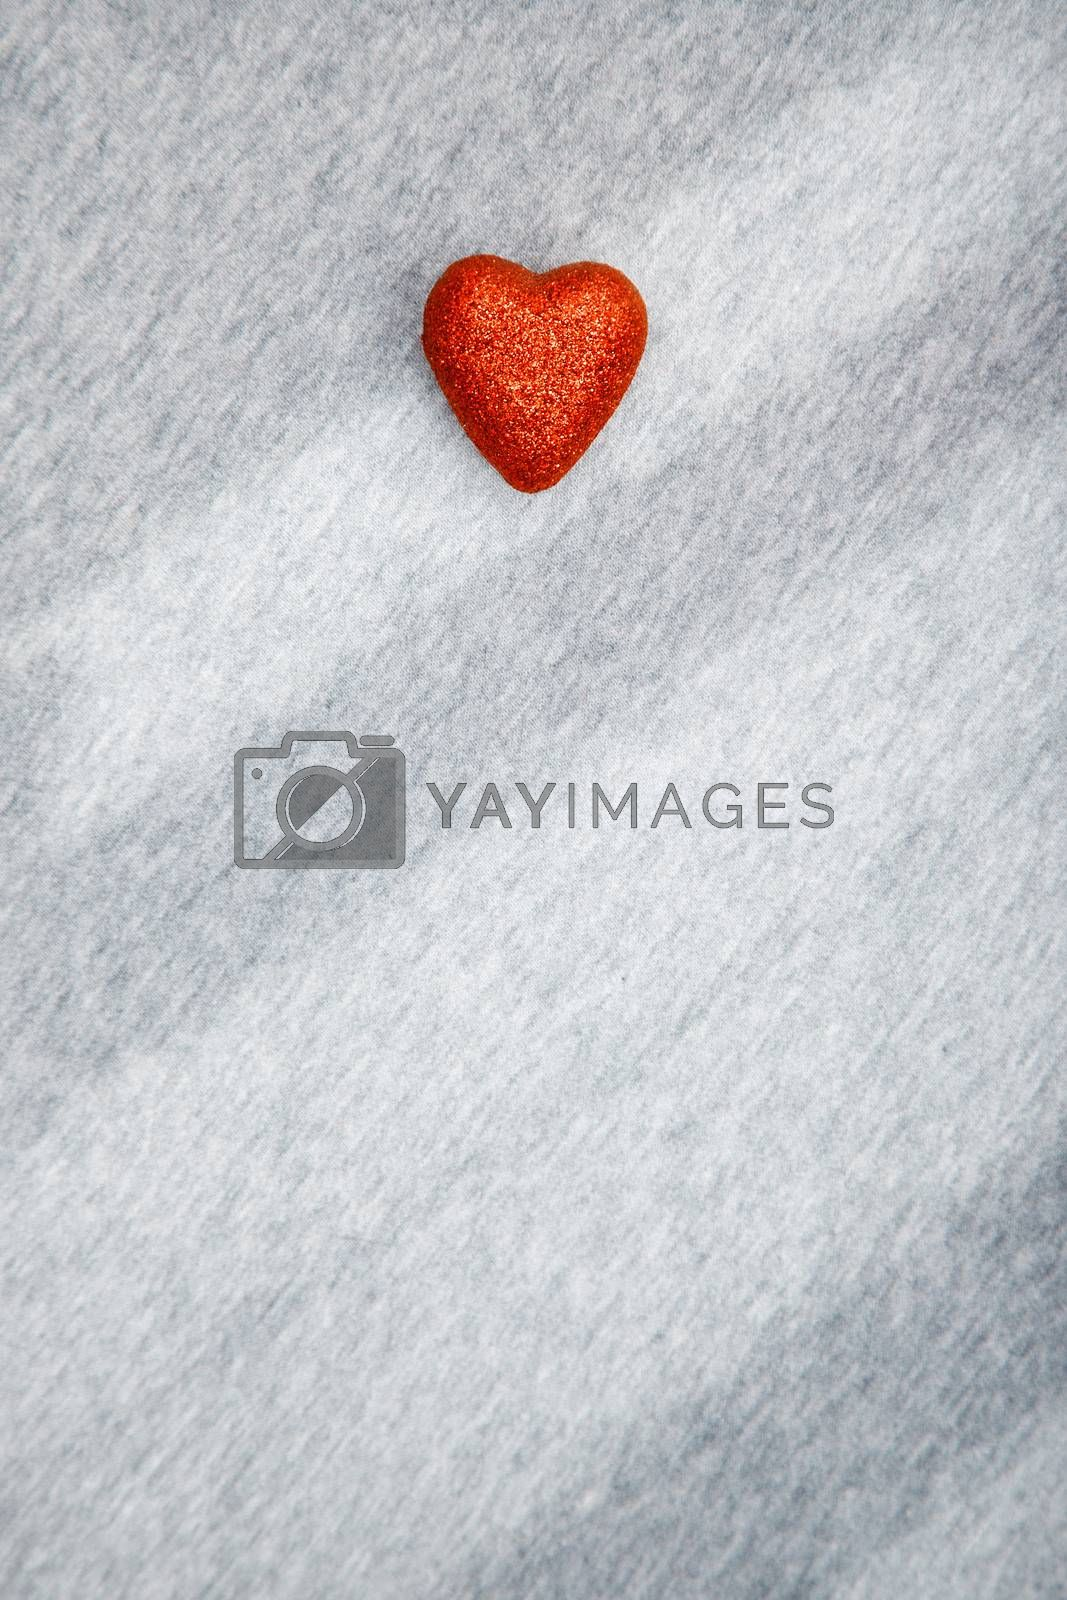 Red heart of love on a textured background with shadows